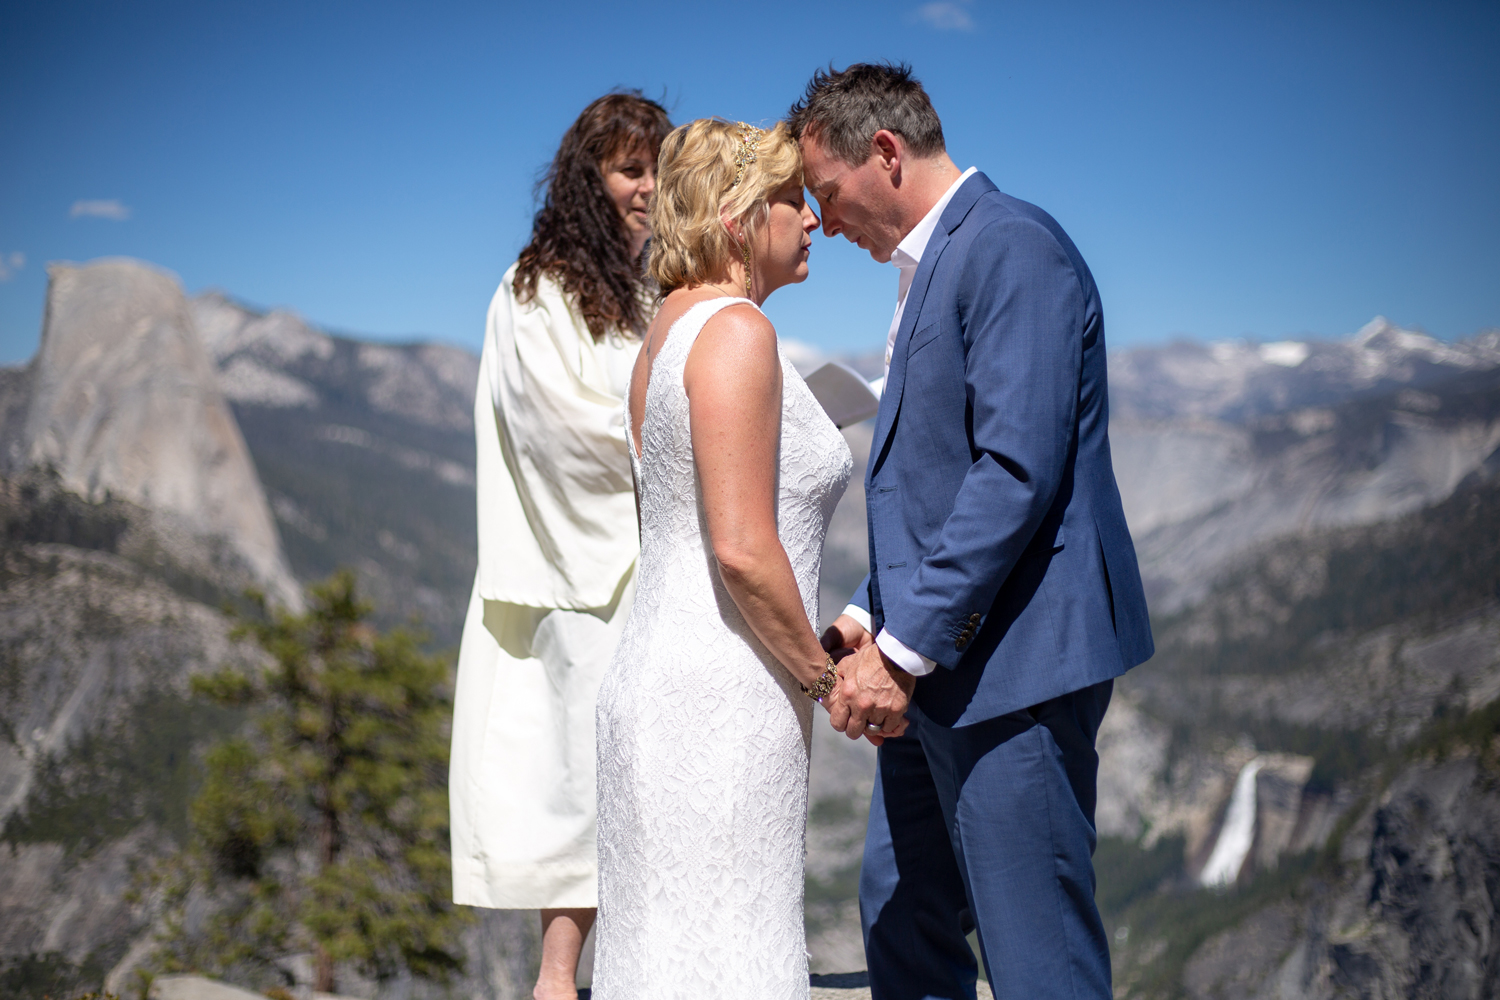 Yosemite-Wedding-photography-lisa-james (3).jpg